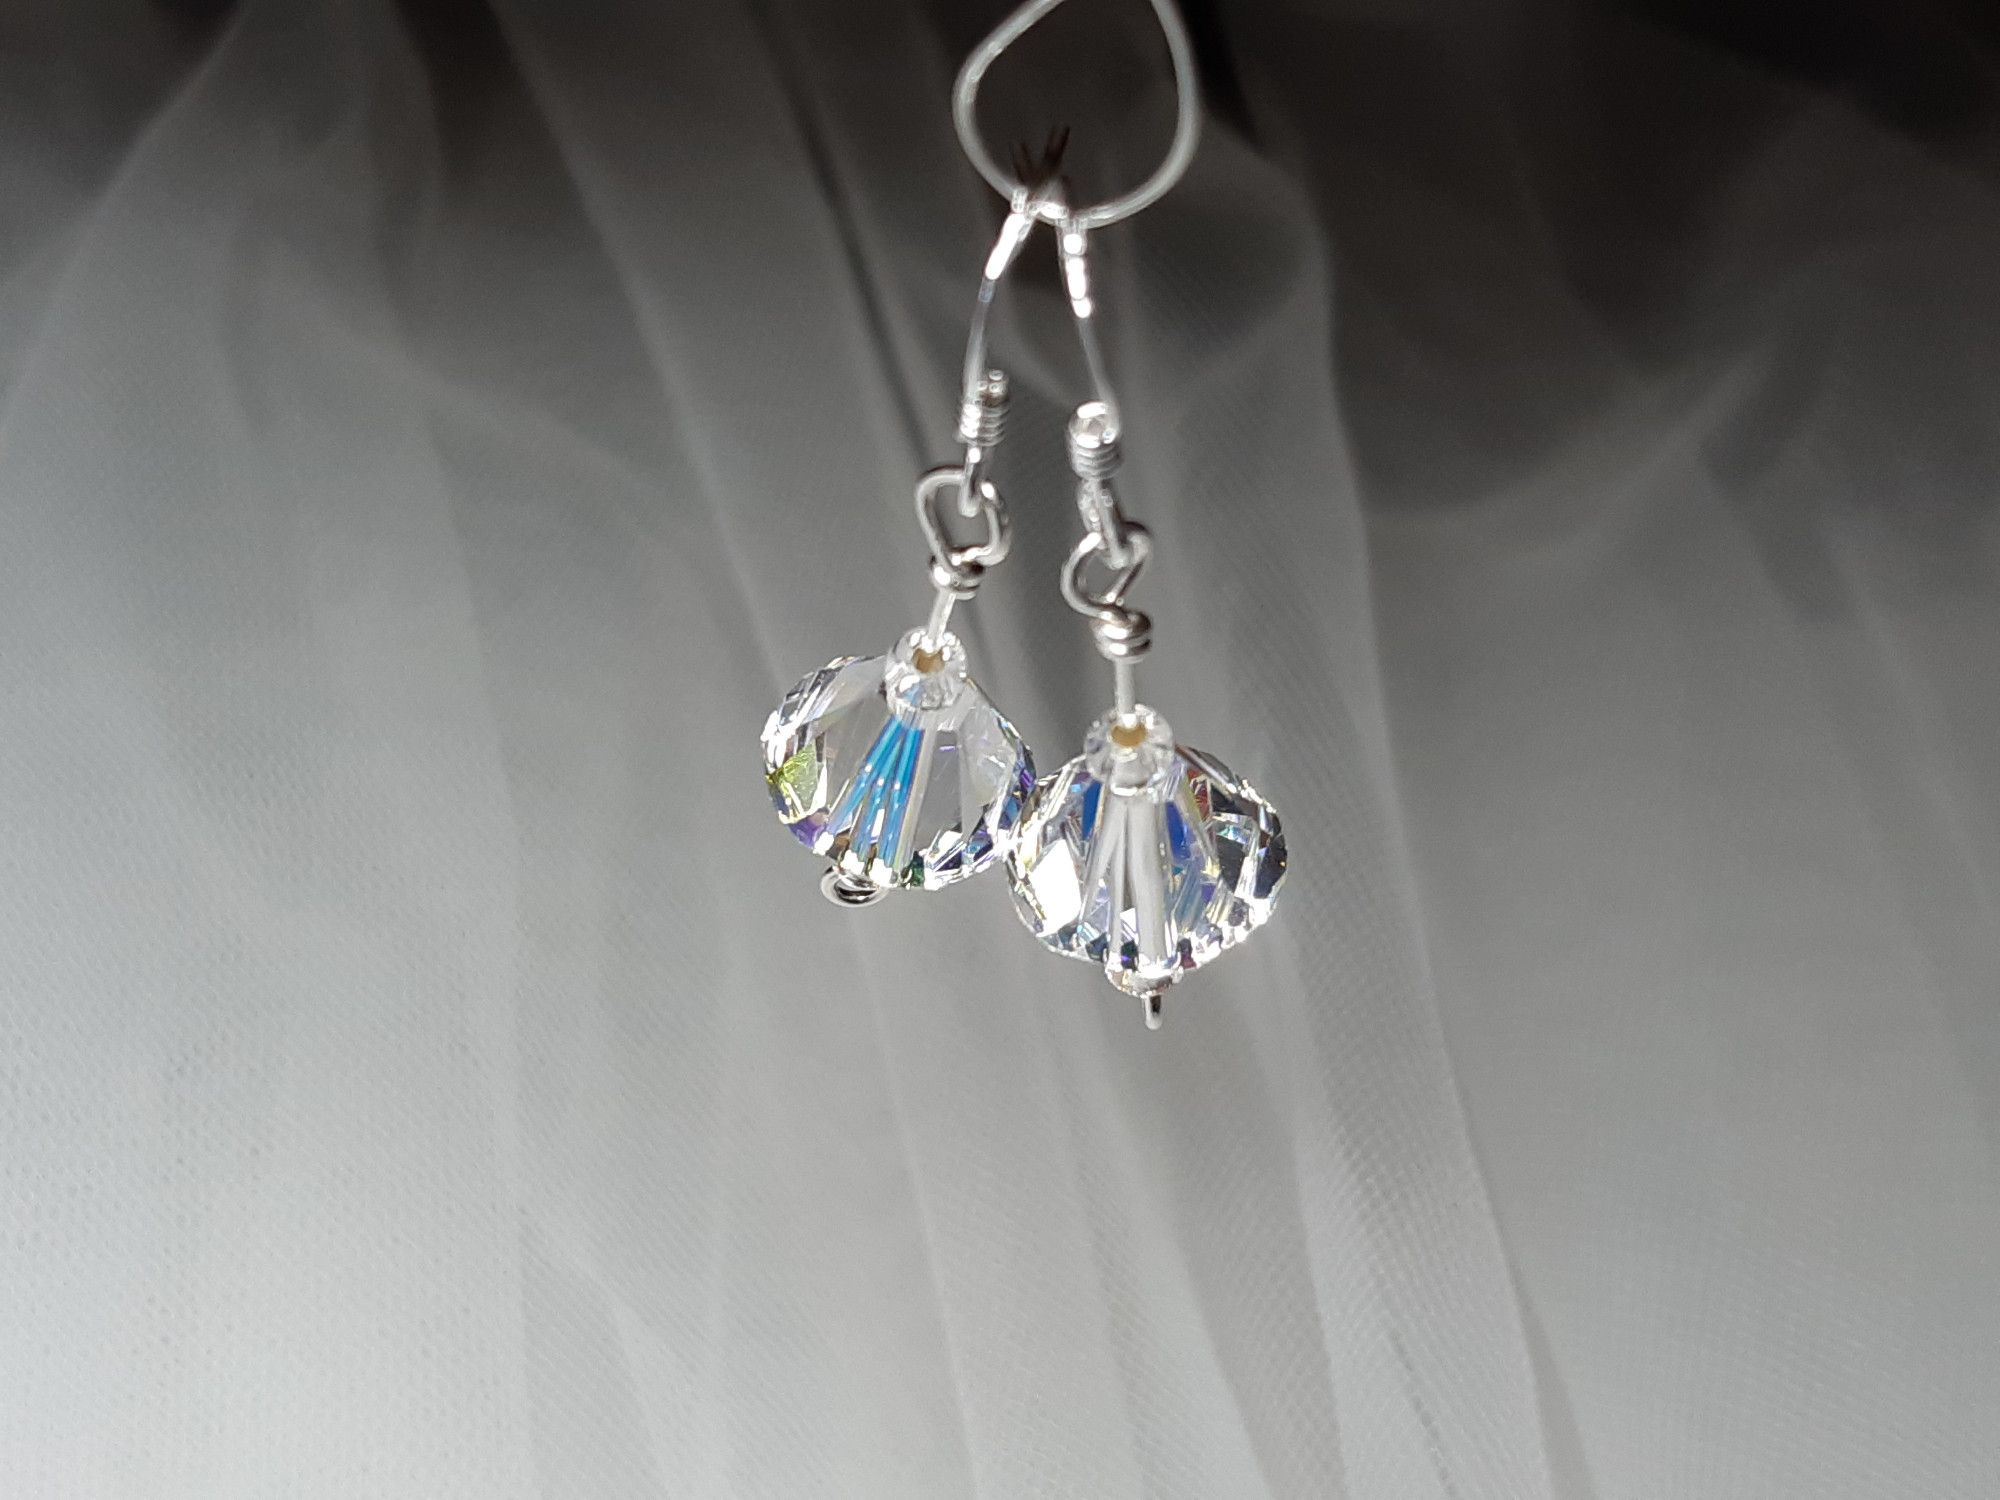 Occasion-wedding-swarovski crystal+sterling silver earrings-2.jpg